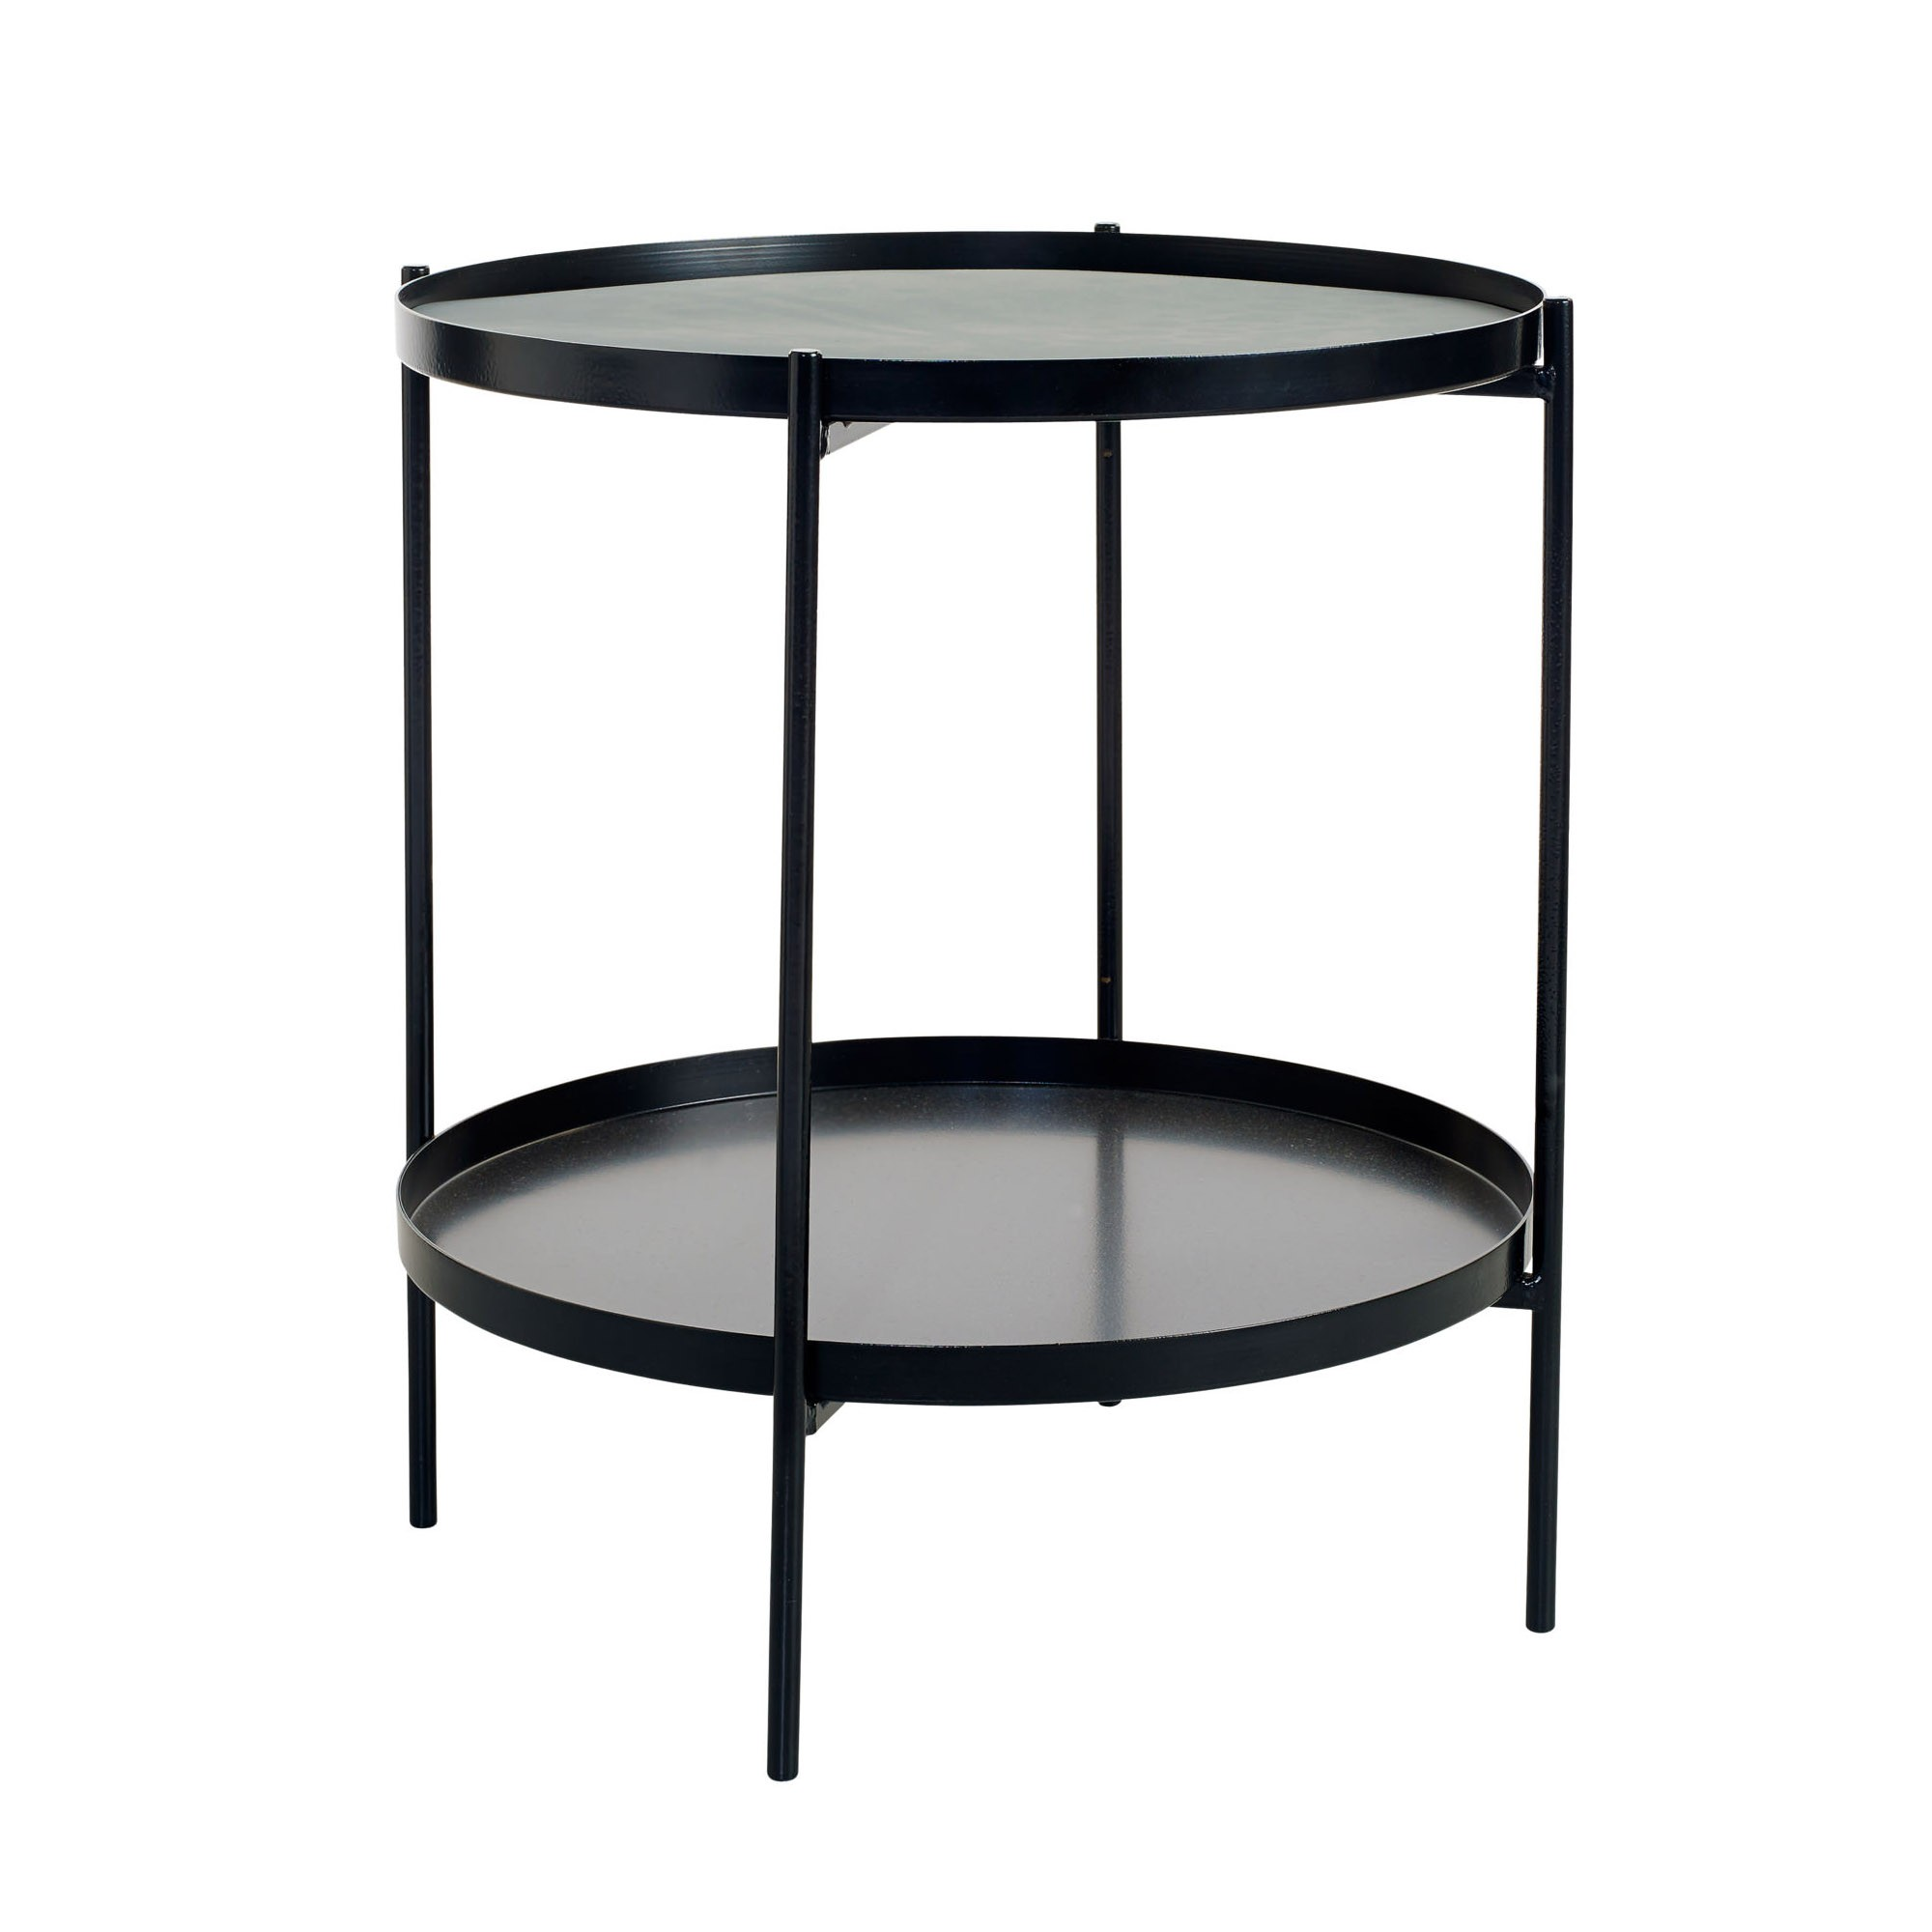 TRAY side table S black BOLIA